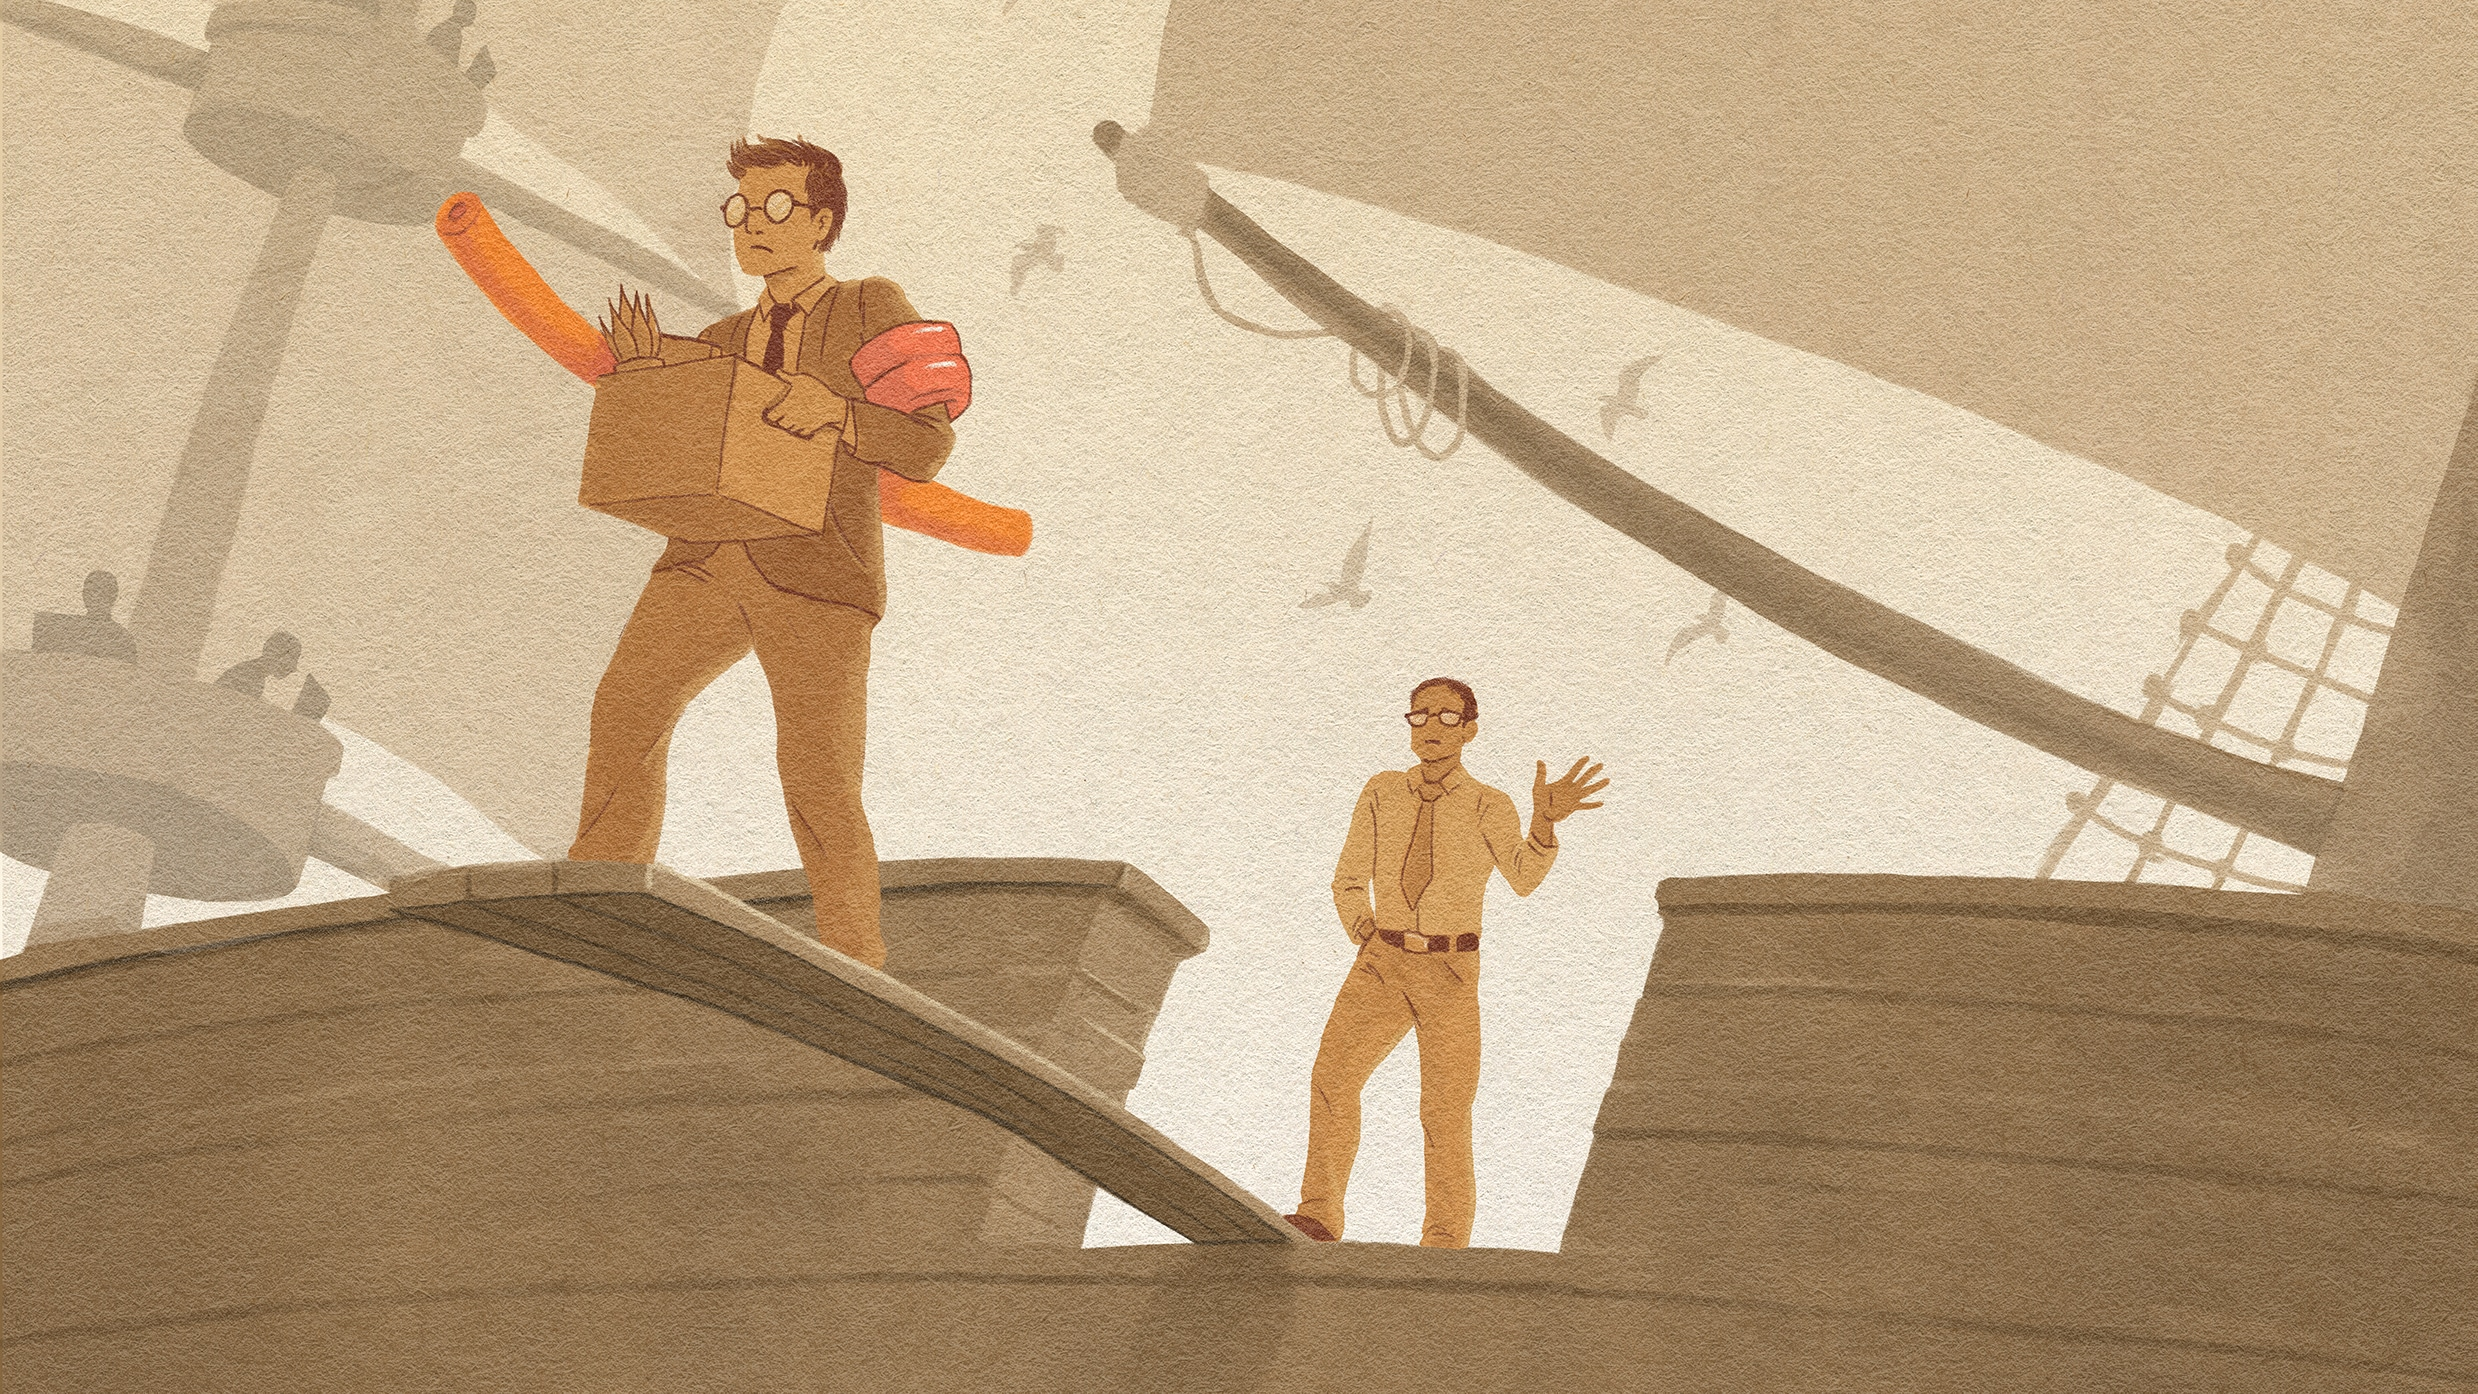 Illustration of an employee walking the plank wearing waterwings and a pool noodle while his boss waves goodbye on the deck of the ship.